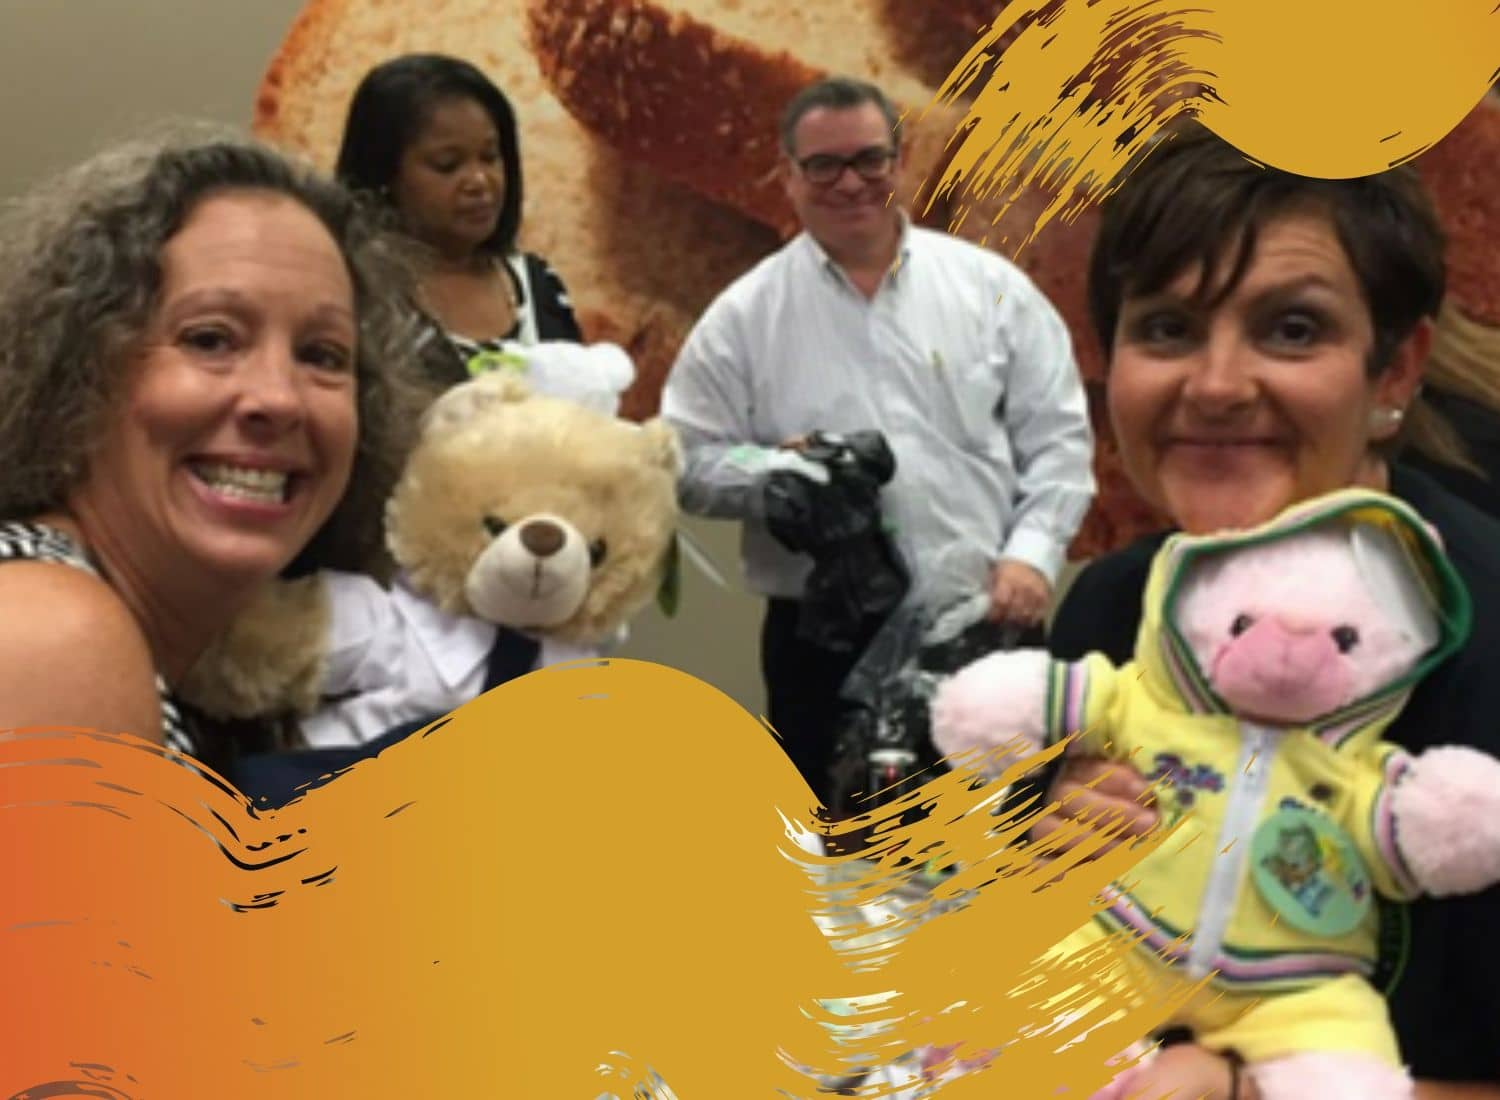 A group from Hilton enjoys a charity teddy bear team building activity.